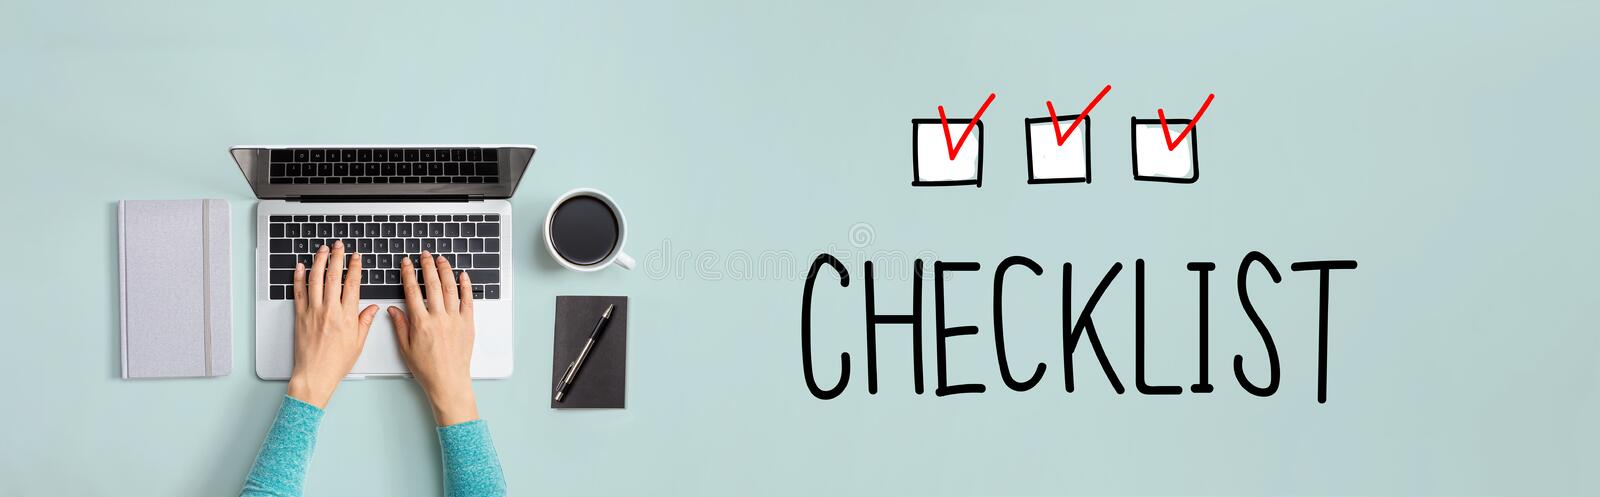 Checklist with person using laptop vector illustration